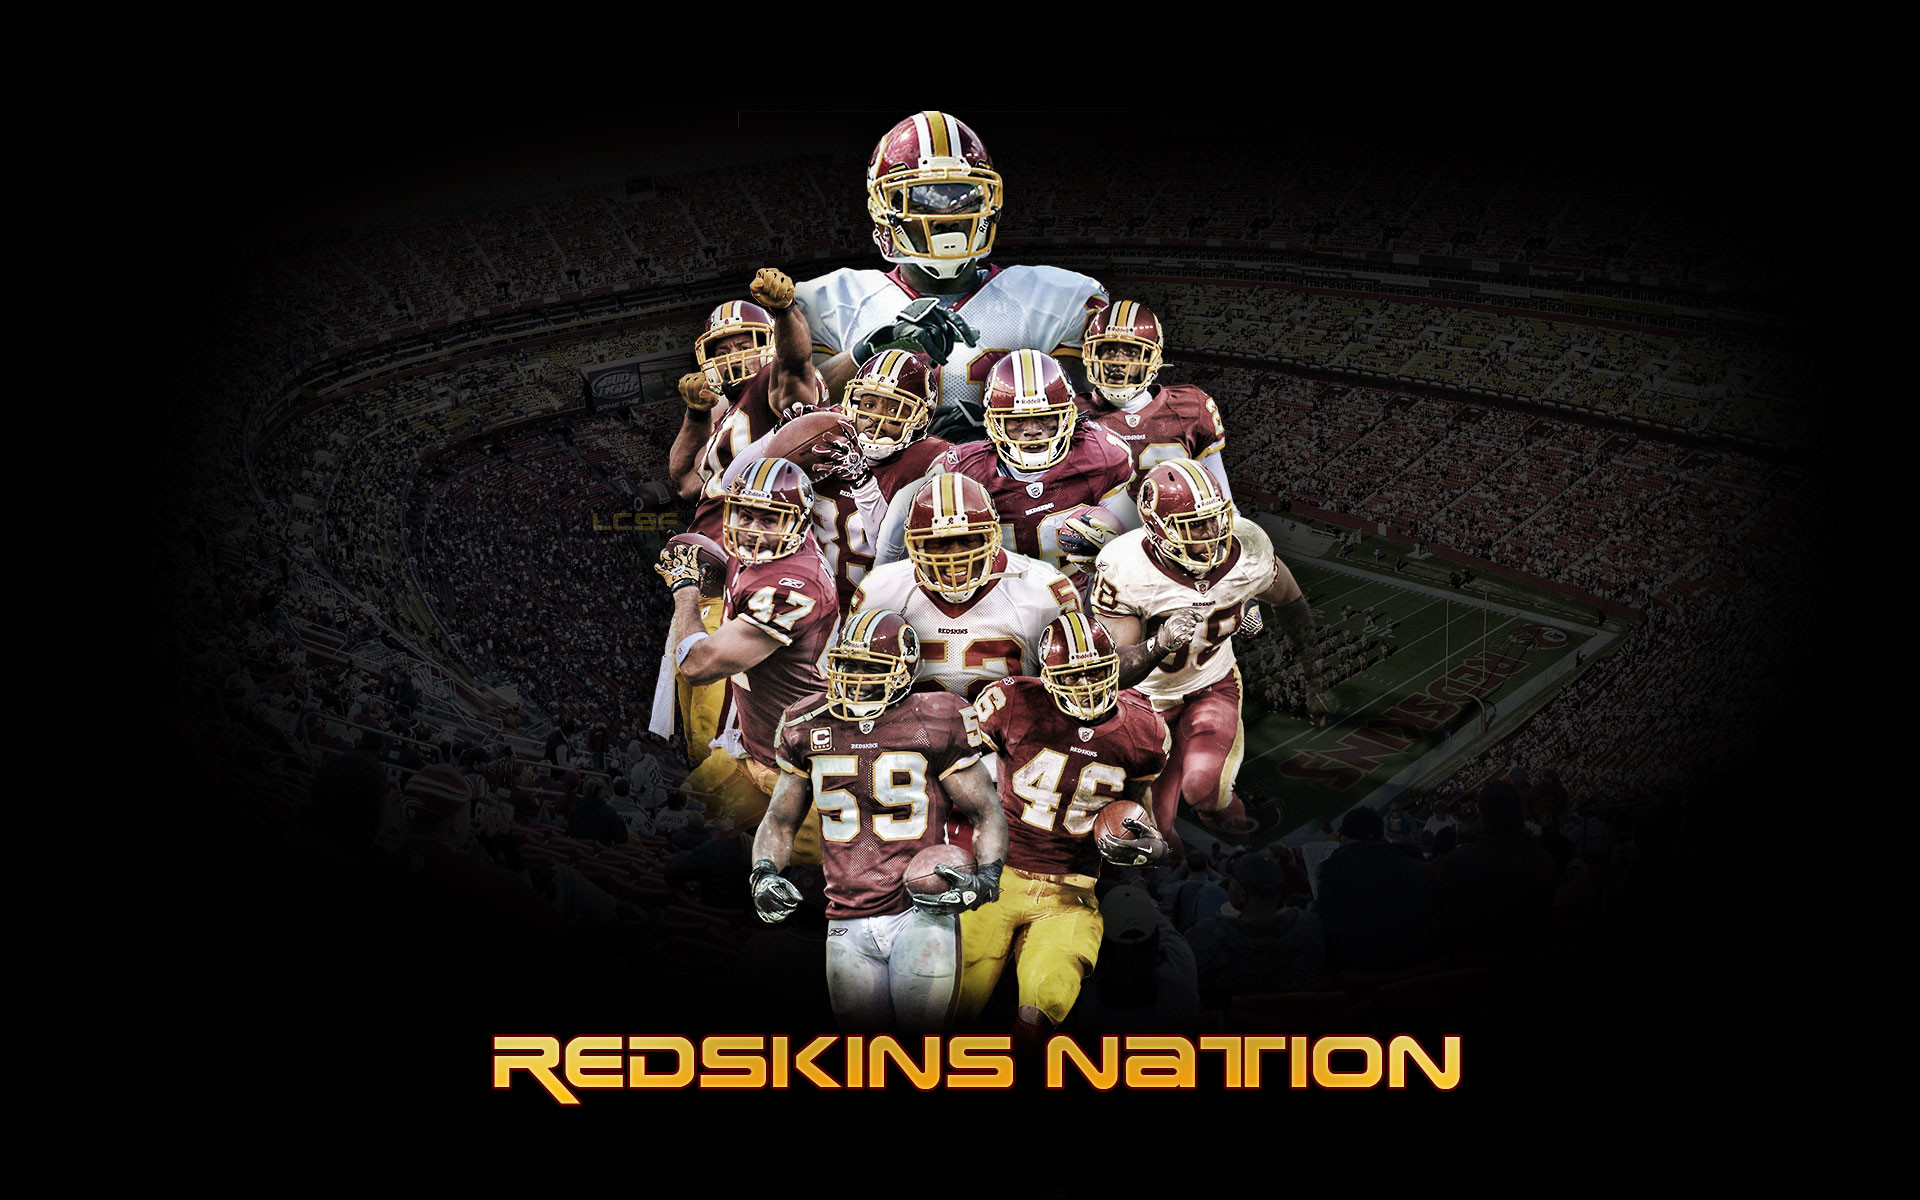 Redskins HD Background Wallpaper   HD Wallpapers, HD Backgrounds .